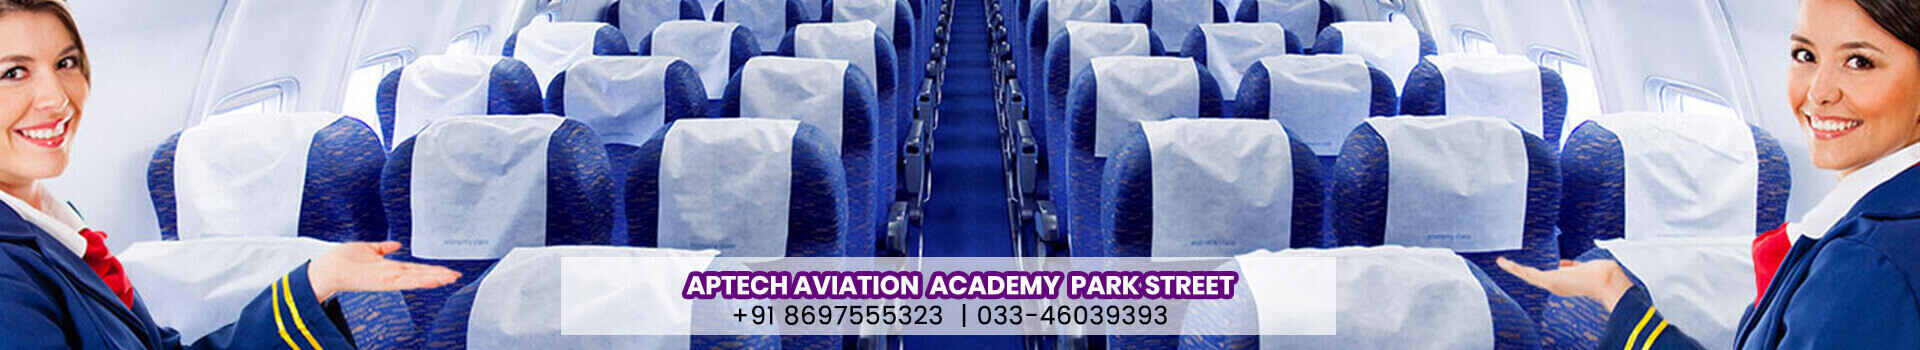 Facilities in aviation industries in kolkata